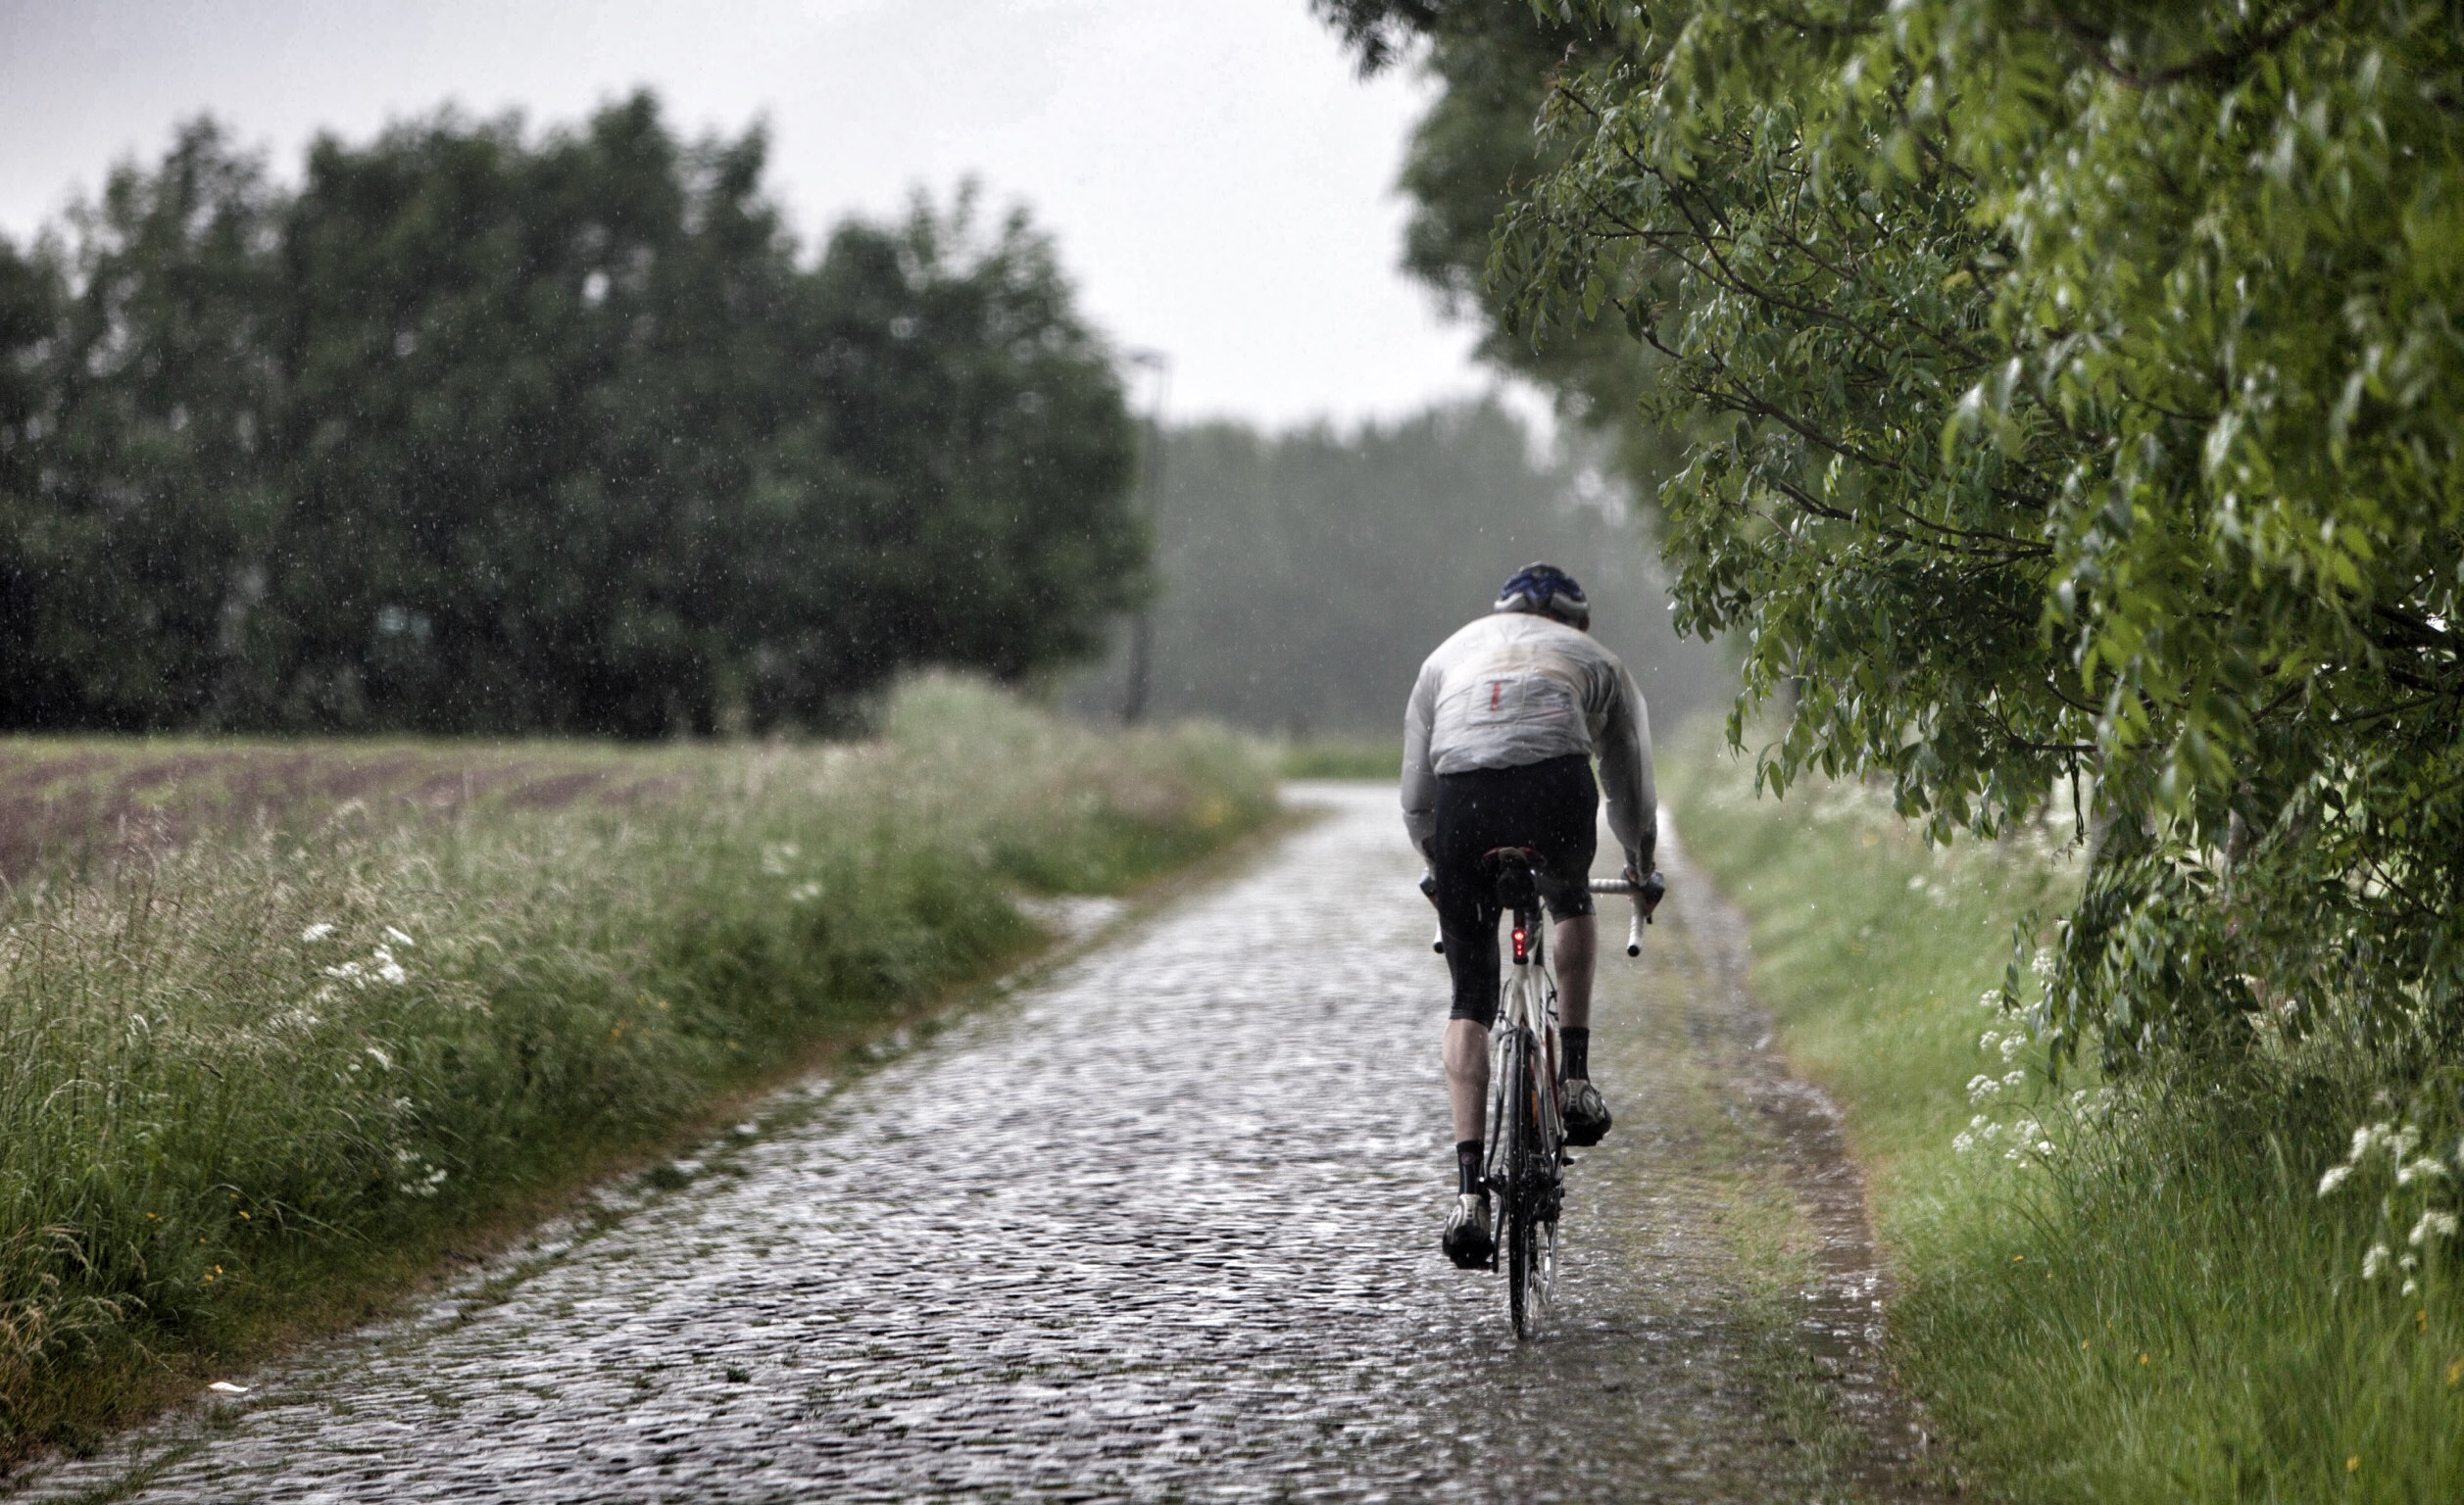 The first set of wet cobbles: Simon, learning a whole new aspect of cycling